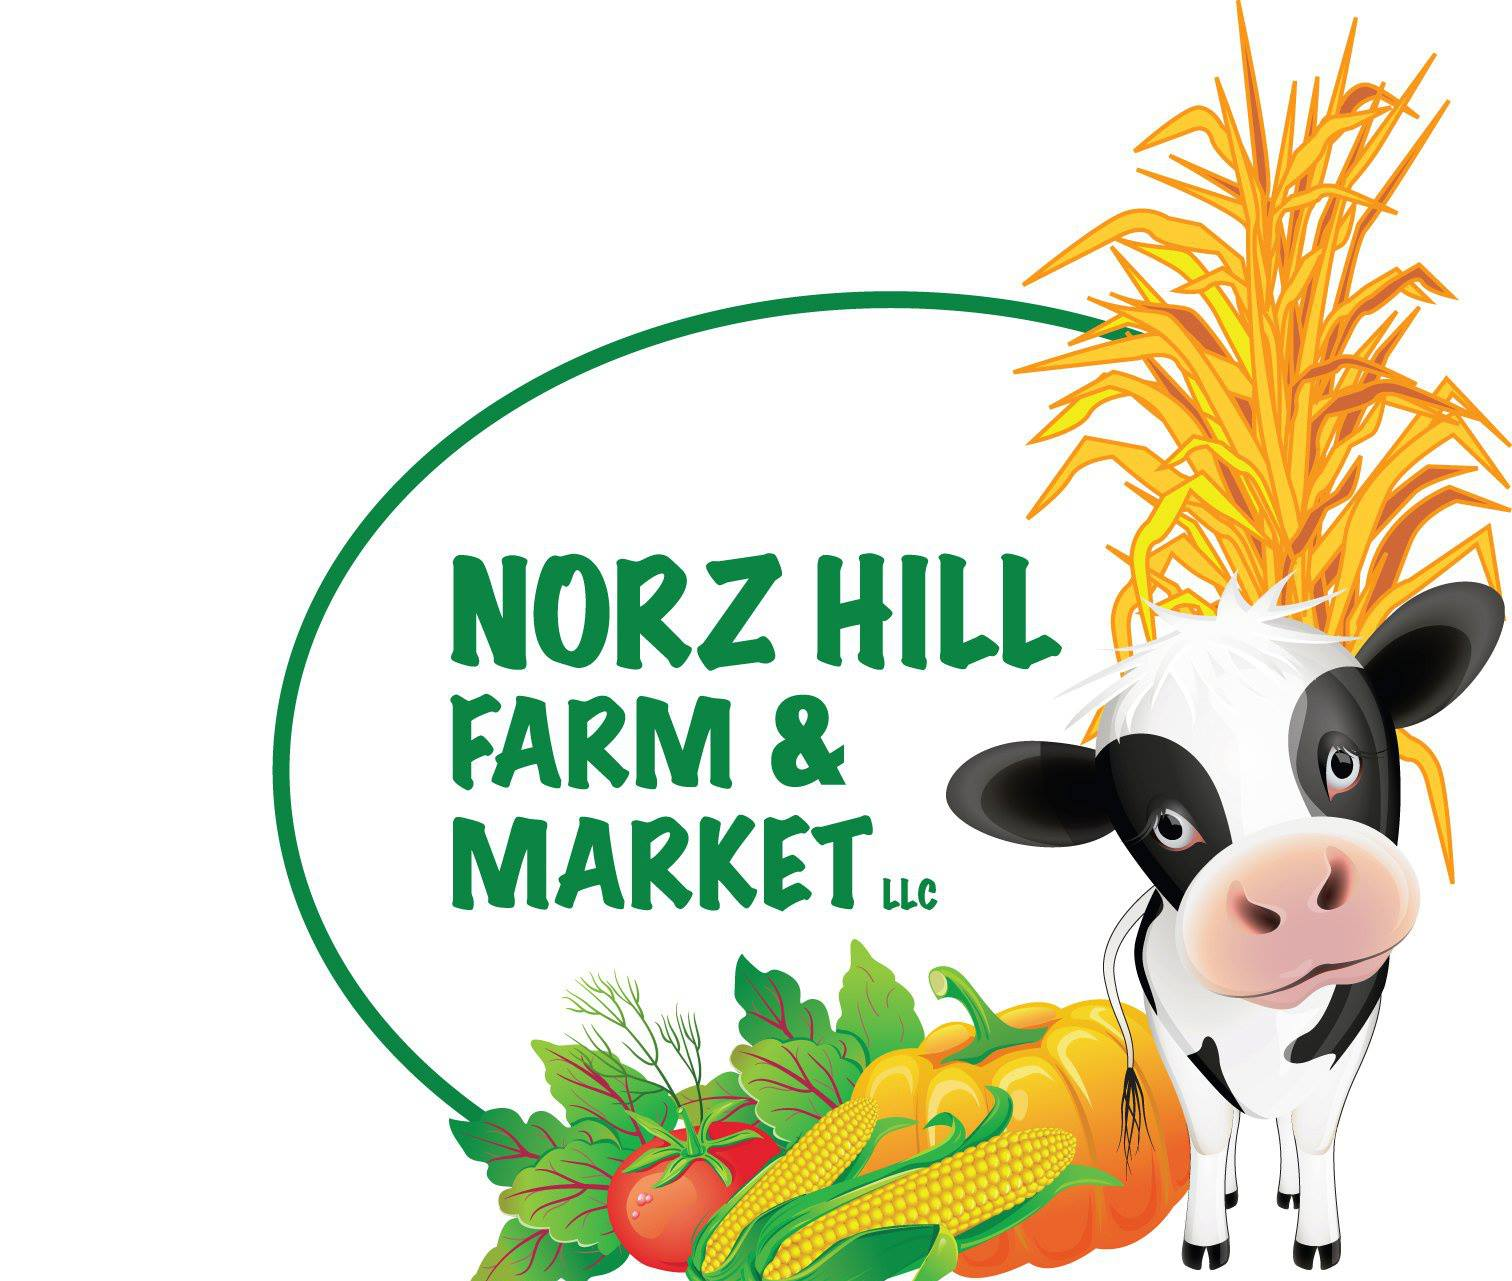 Norz Hill Farm & Market